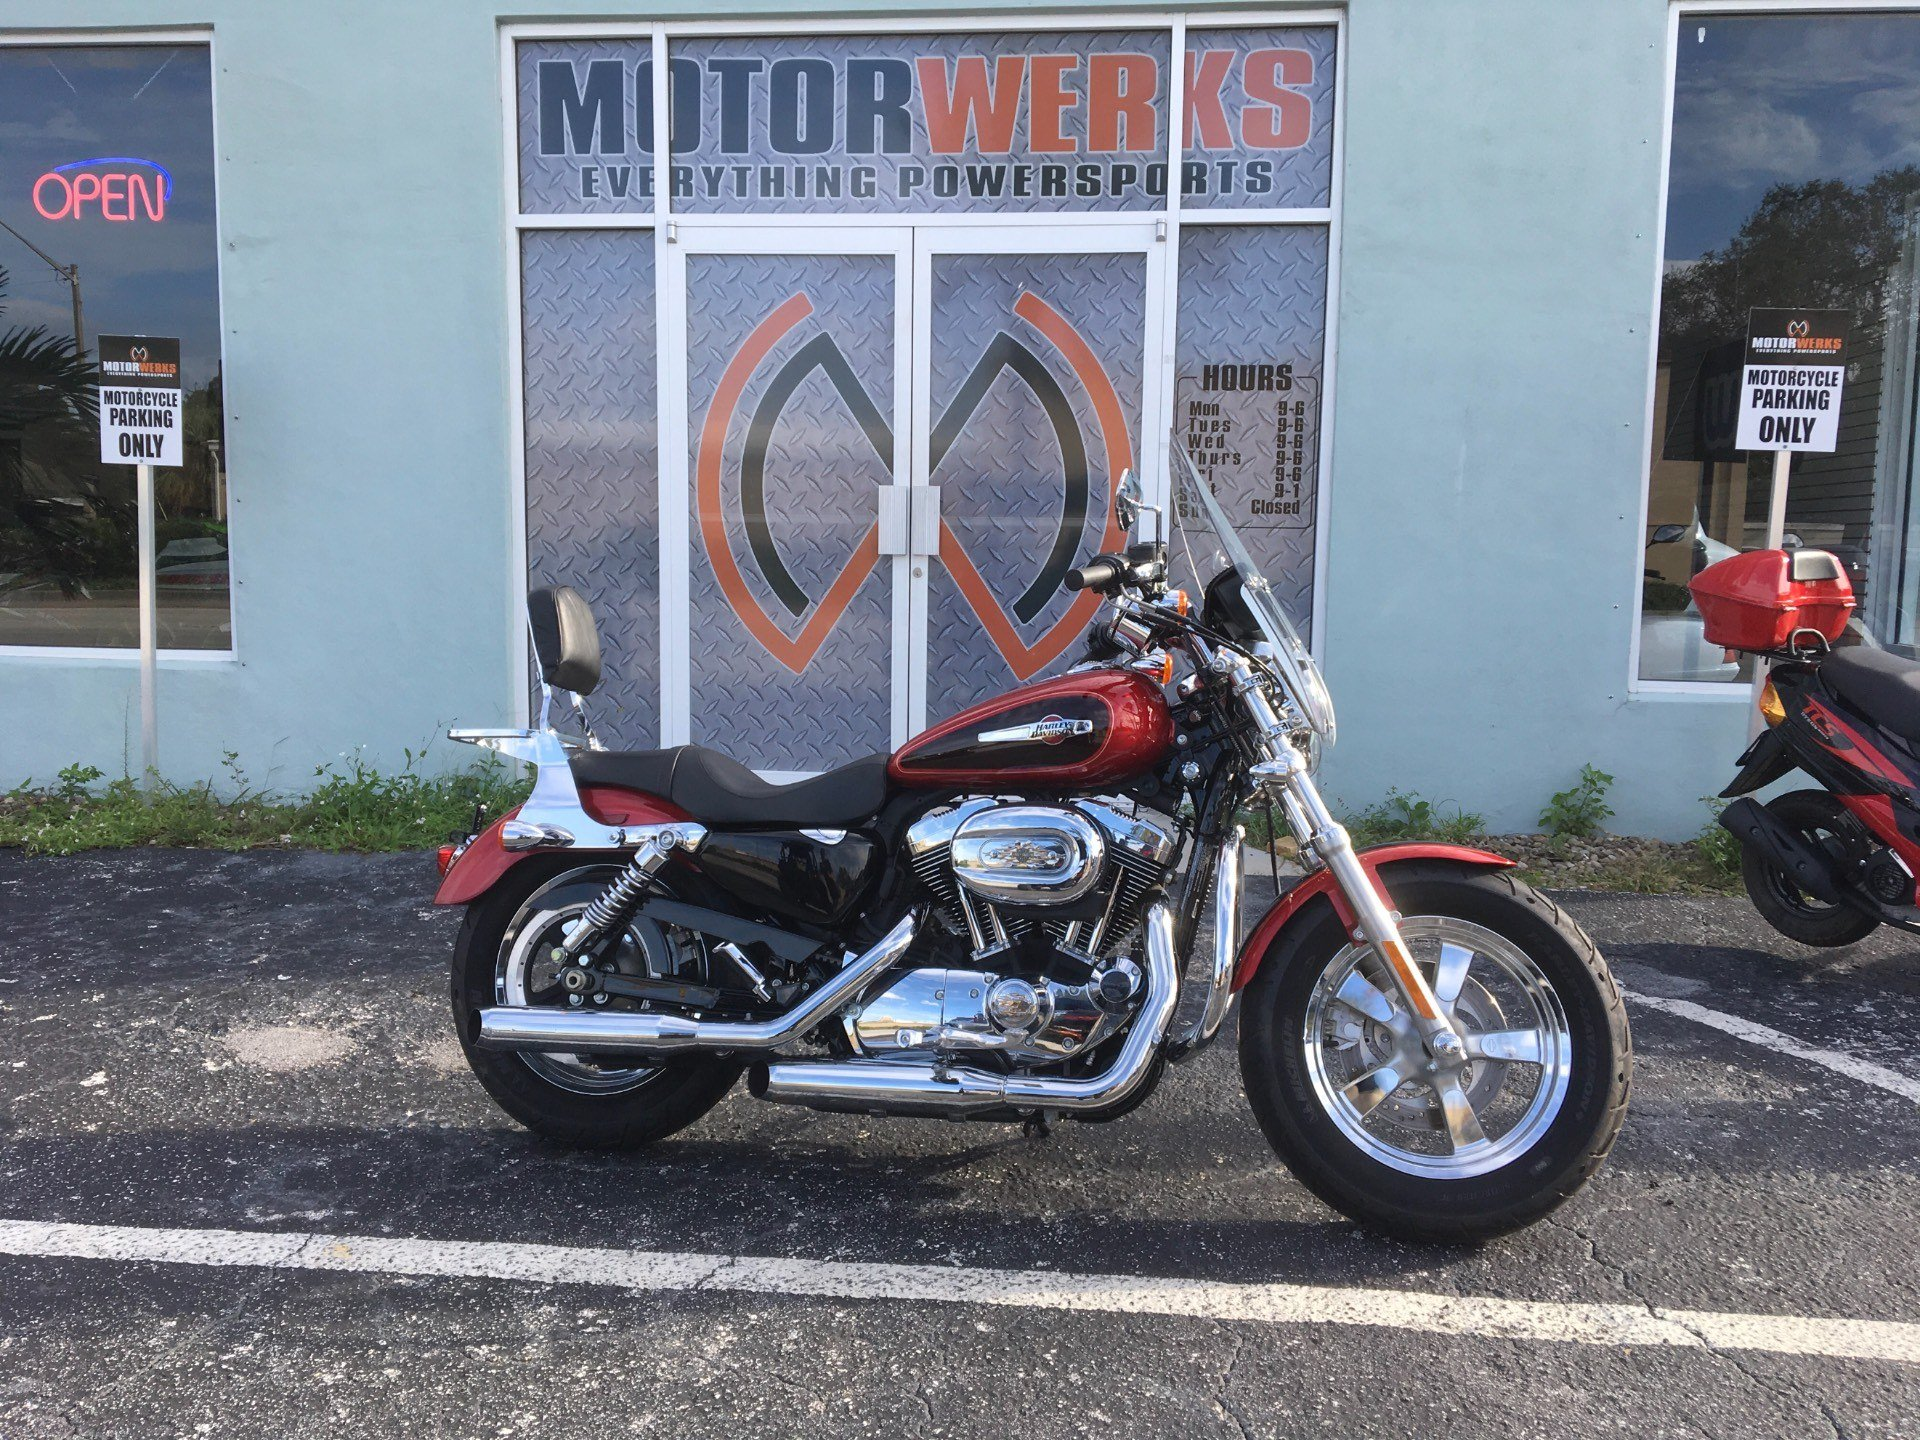 Xl Wiring Diagram Xlh Standard Seat furthermore Custom Chopper moreover Harley Fls Fxs Twin Cam B B B Softail Deuce Fat Boy Service Repair Manual as well Fl Front Fork together with Brake L s Silverado Pickup. on 1995 harley softail wiring diagrams